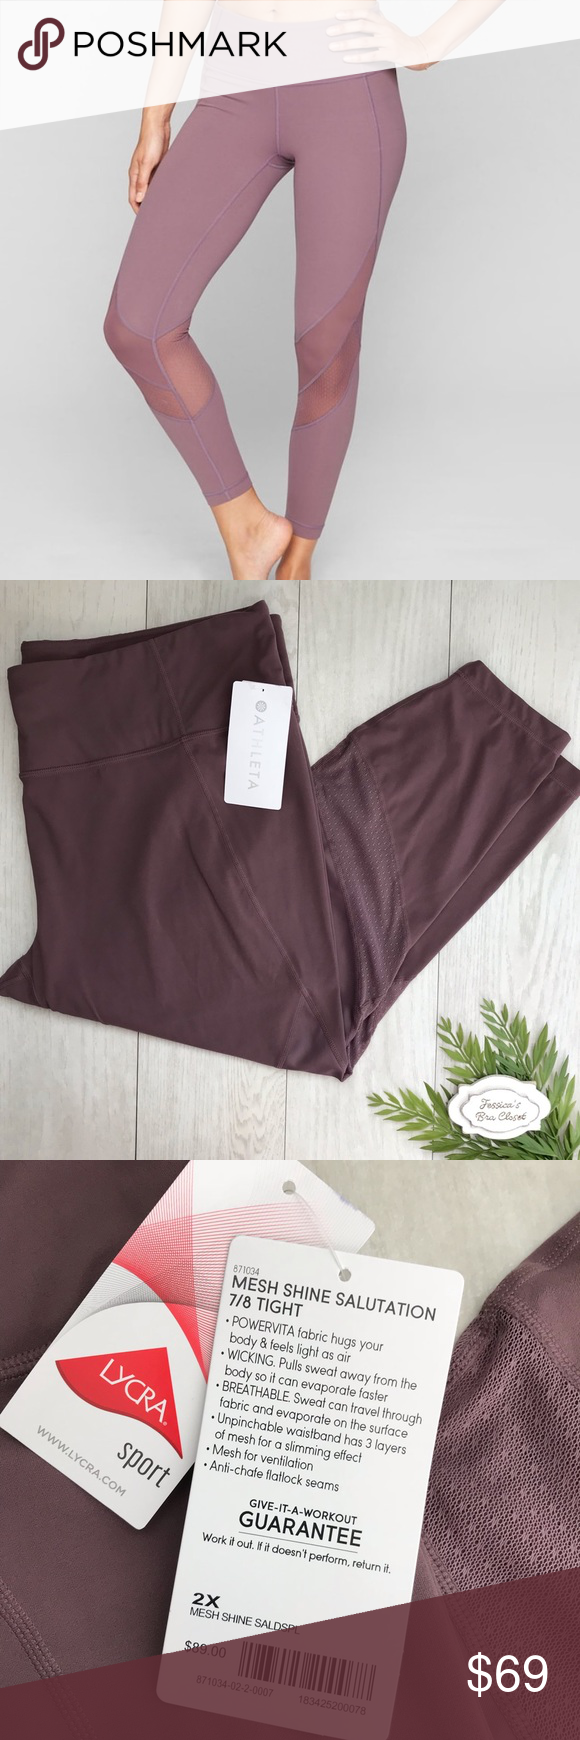 f581cf4f0bdd5 ATHLETA⭐️2X Mesh Shine Salutation 7/8 Tight NWT Brand new with tags! NWT  Athleta Mesh Shine Salutation Tights Retail: $89 Color: Dusty Plum - mauve  pink ...